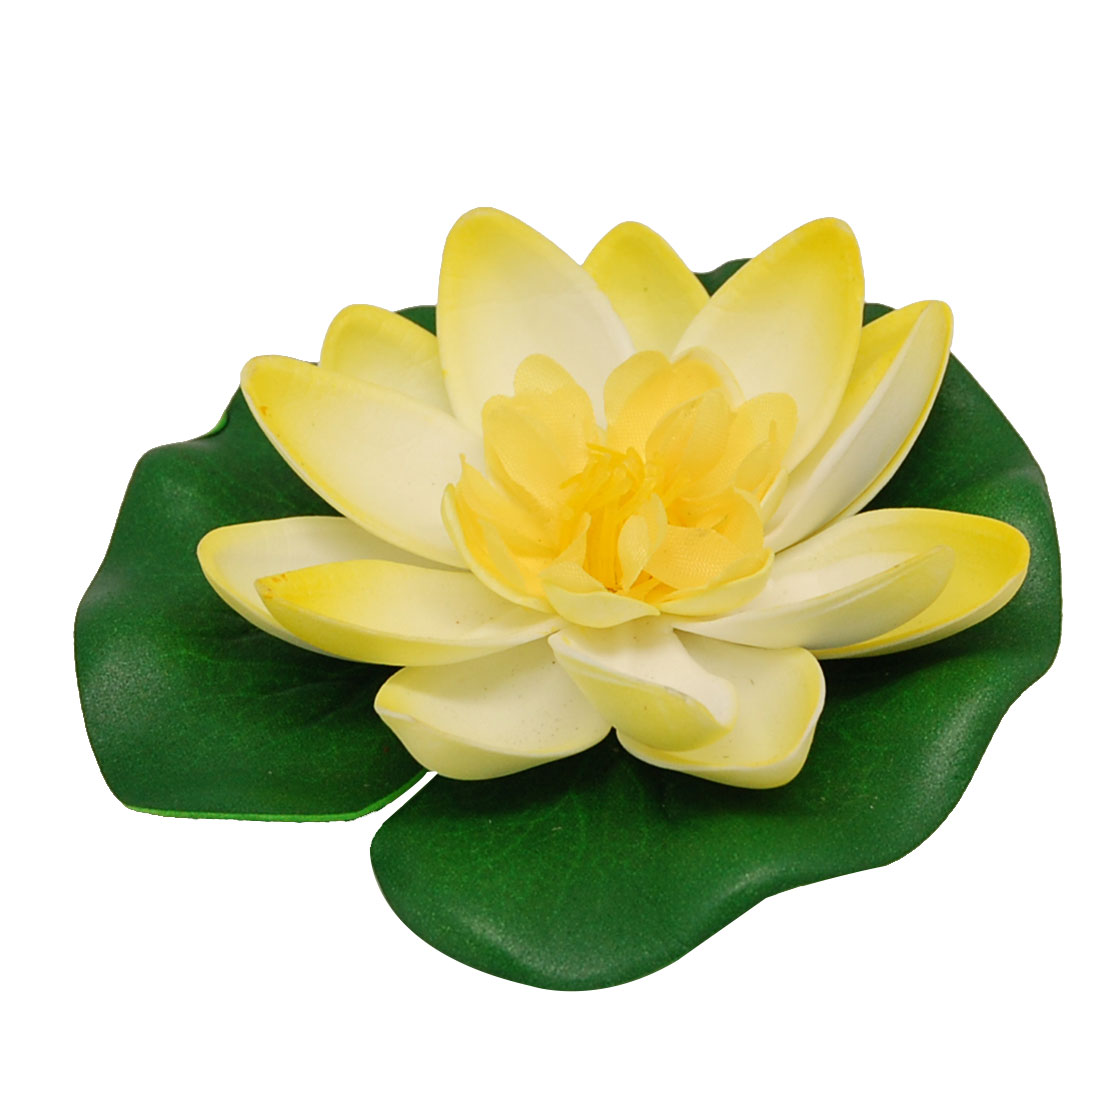 Beautiful Foam Ornament Lotus Plants for Fish Tank Aquarium